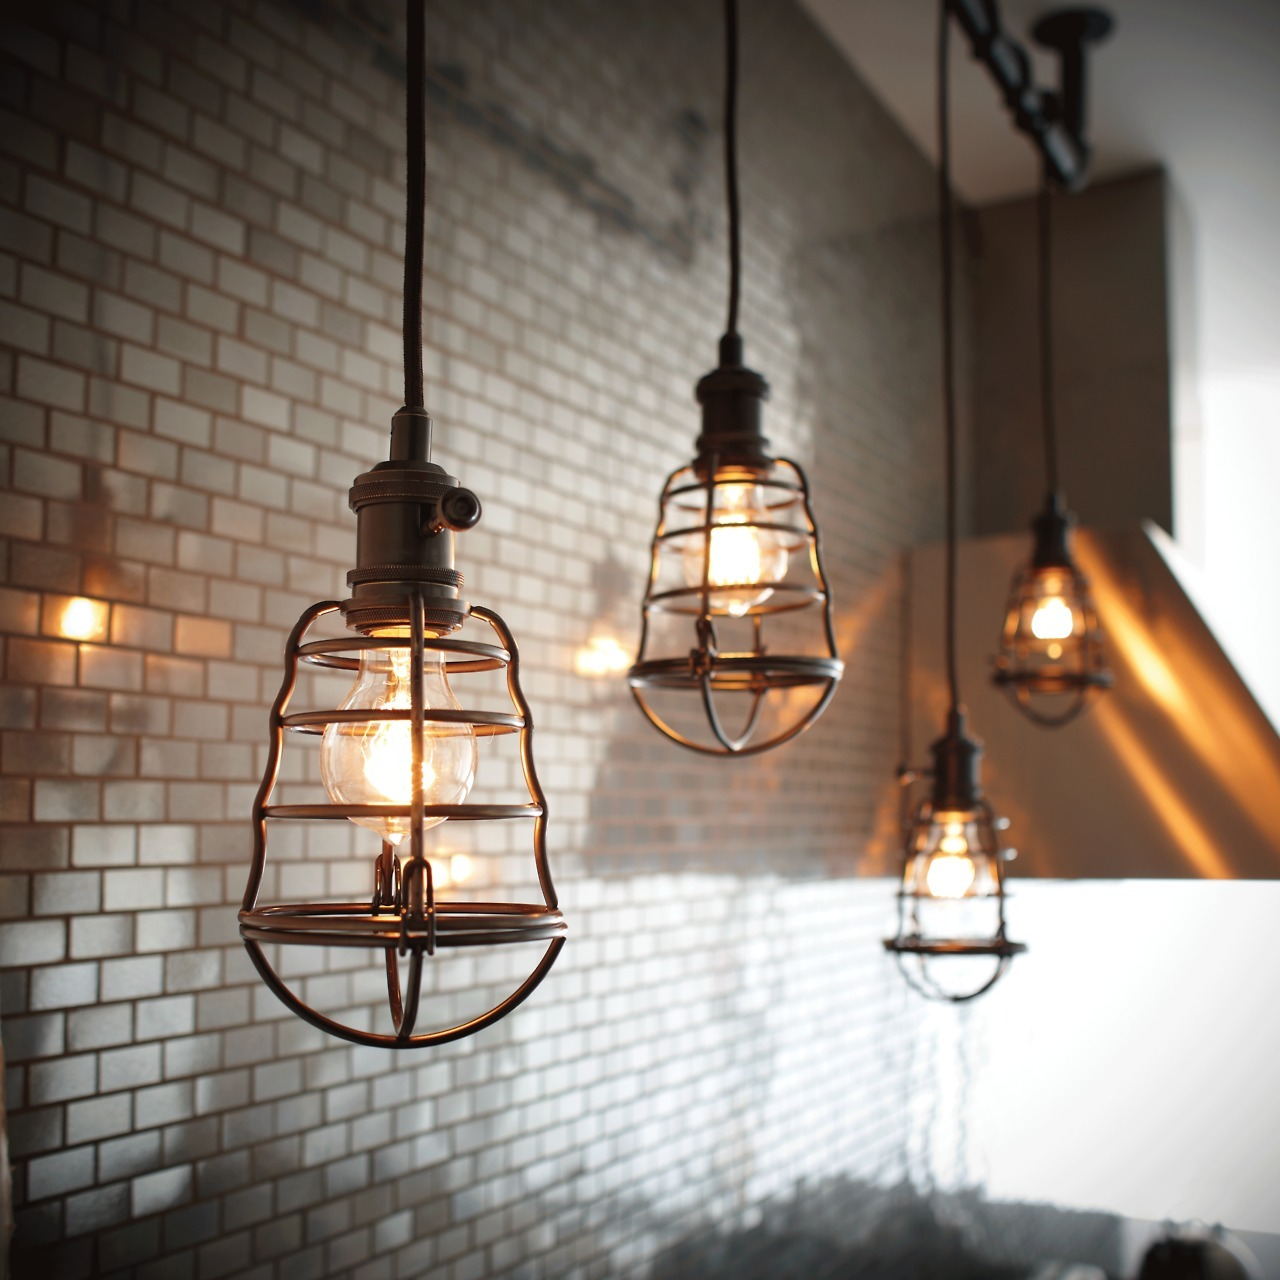 Industrial Chic Lighting Diy Interior Interior Design Interiors Decor Kitchen